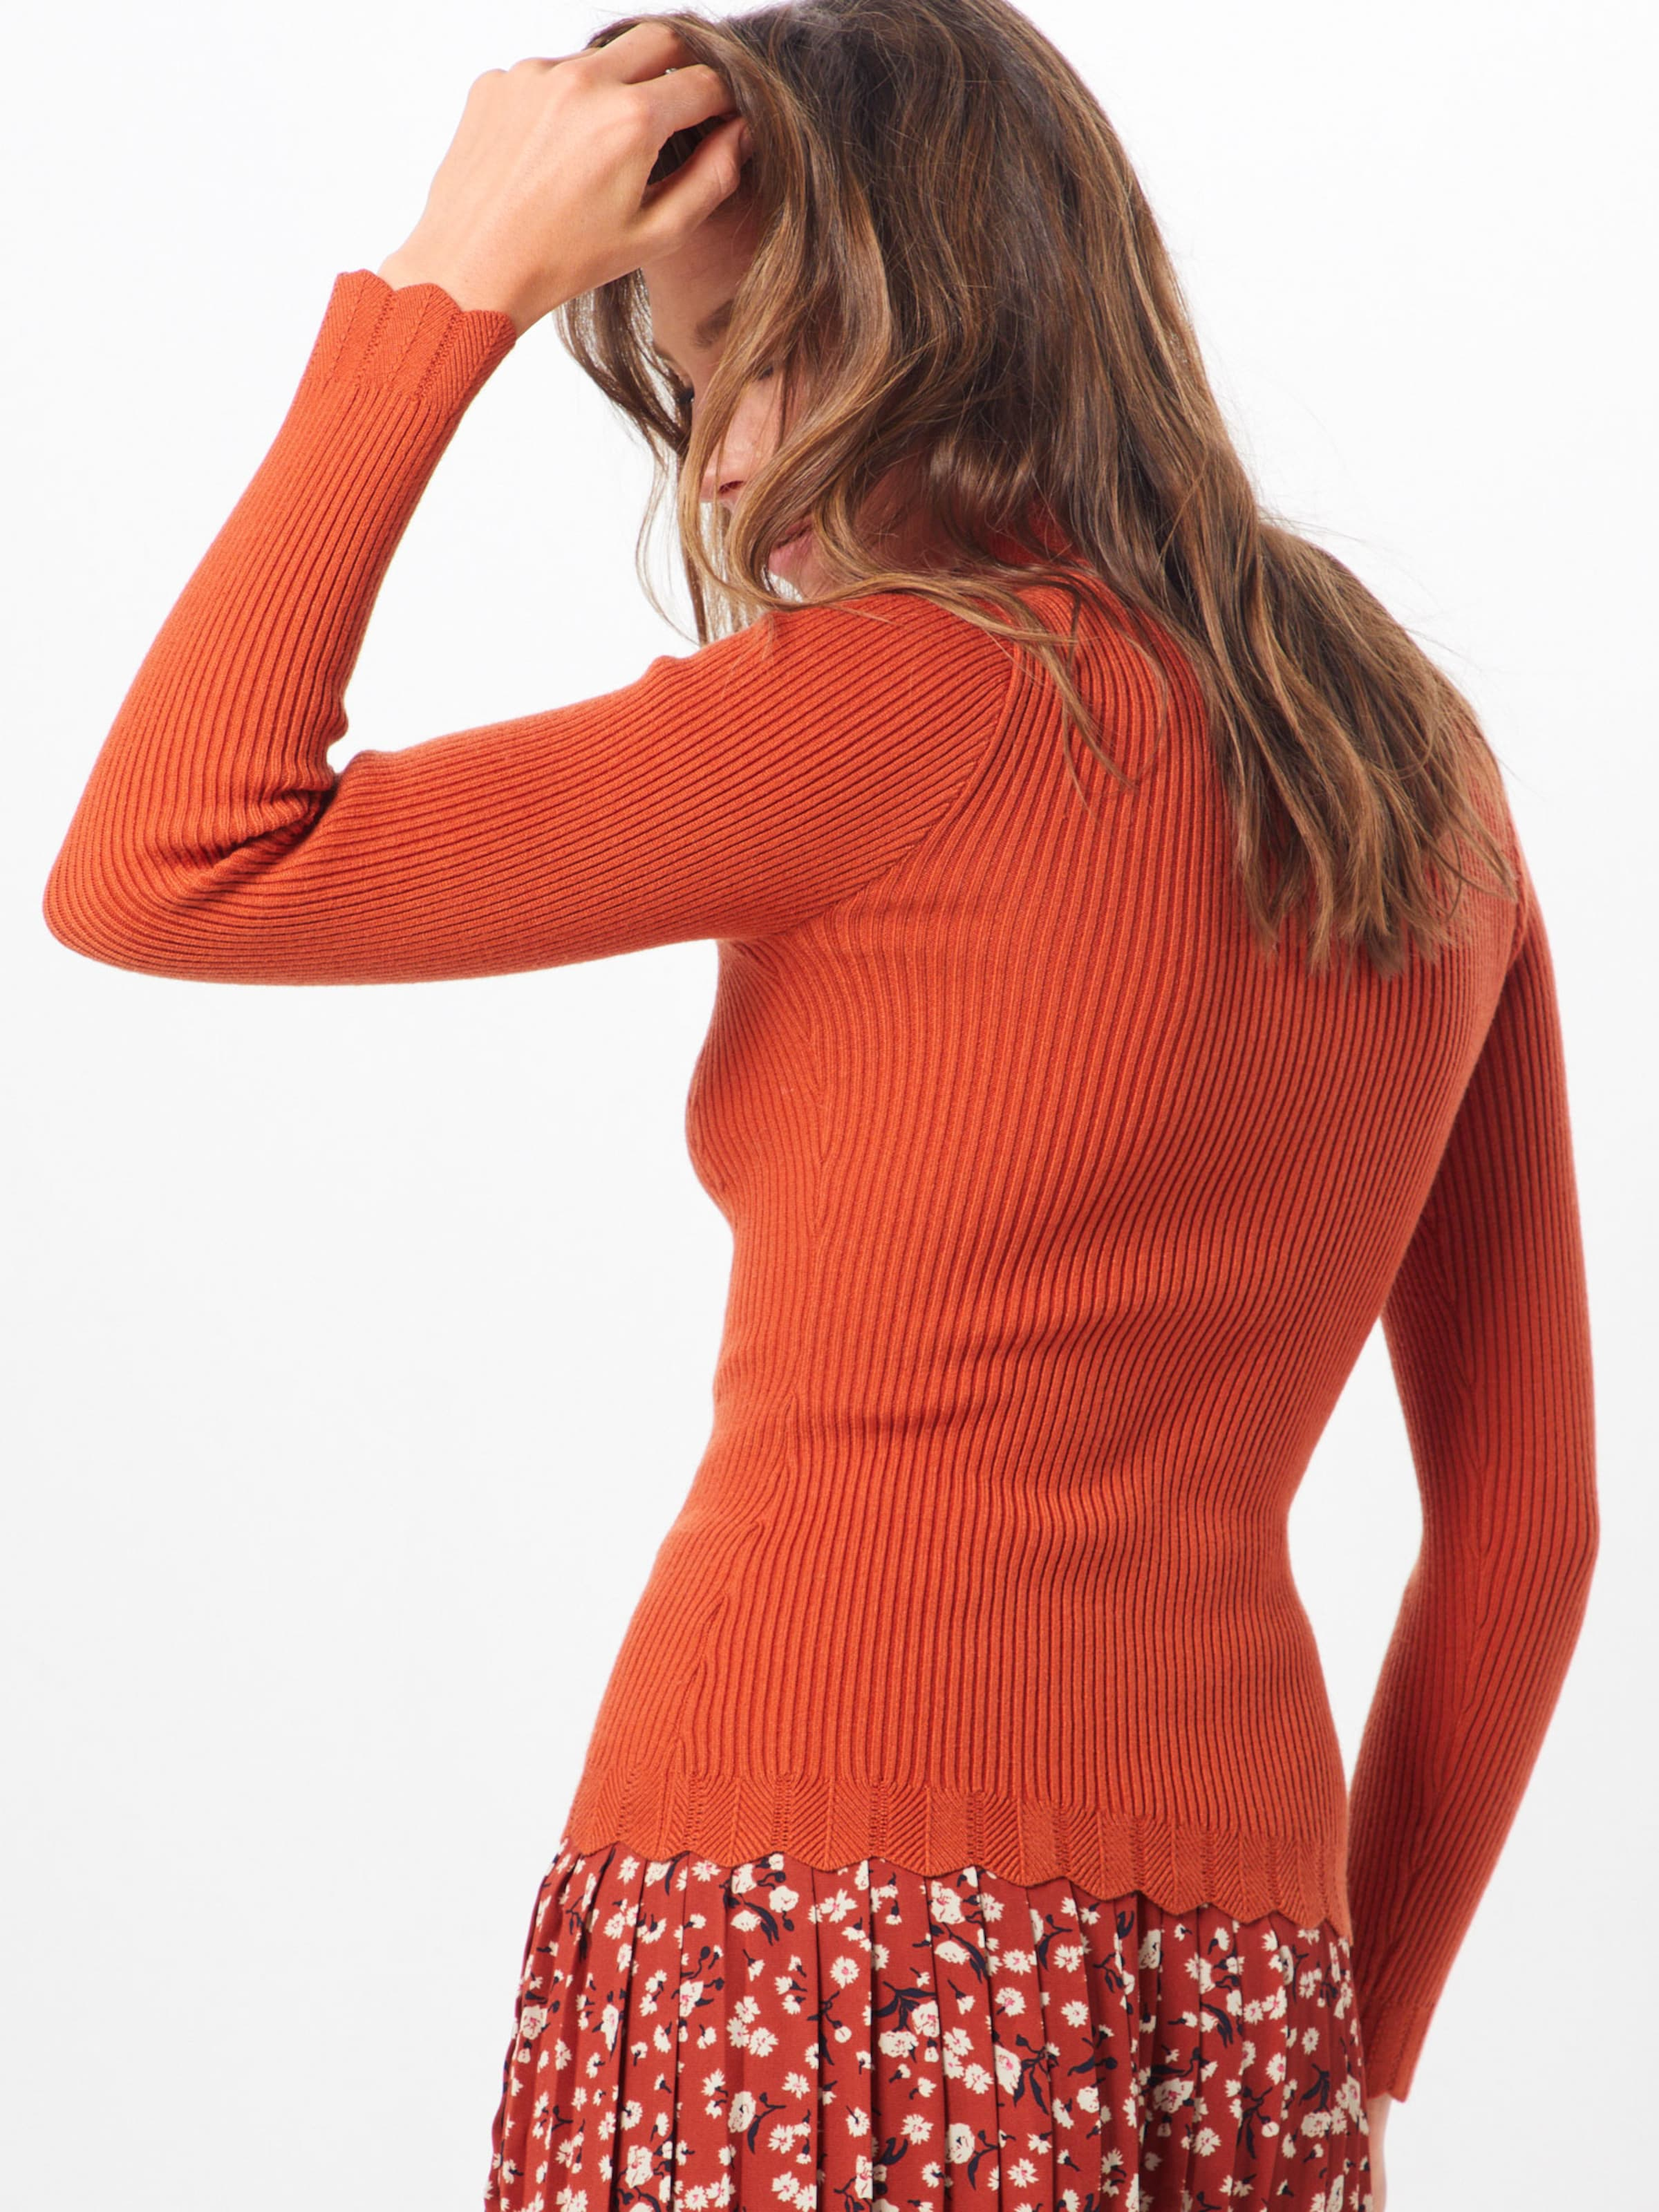 'gingy' In Orange Fashion Pullover Union rsQChdxt